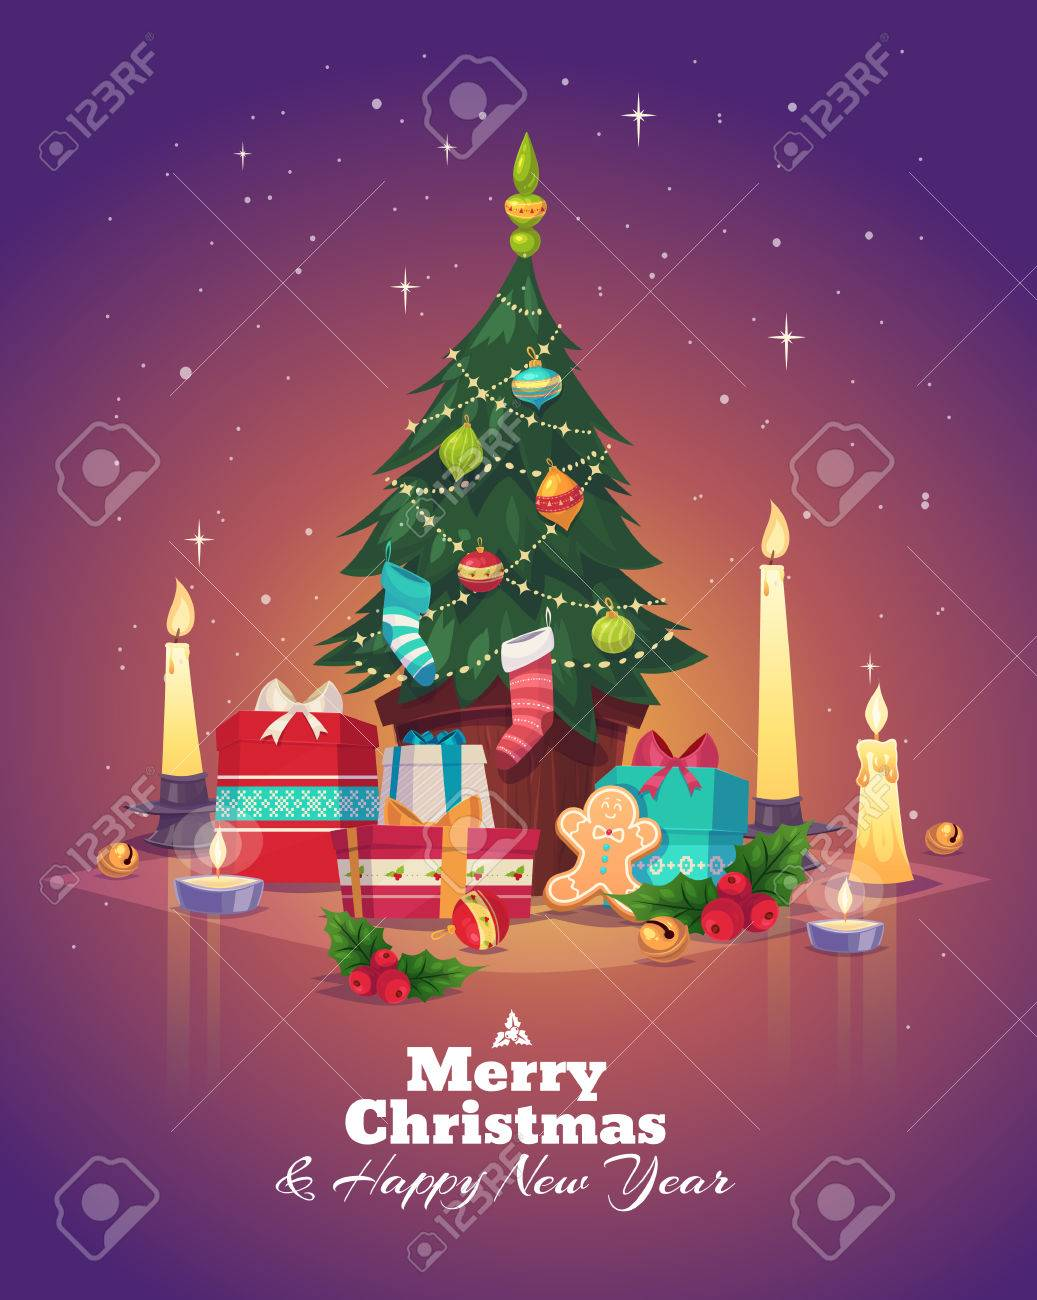 Christmas tree and gifts. Christmas greeting card background poster. Vector illustration. Merry christmas and Happy new year. - 47724475